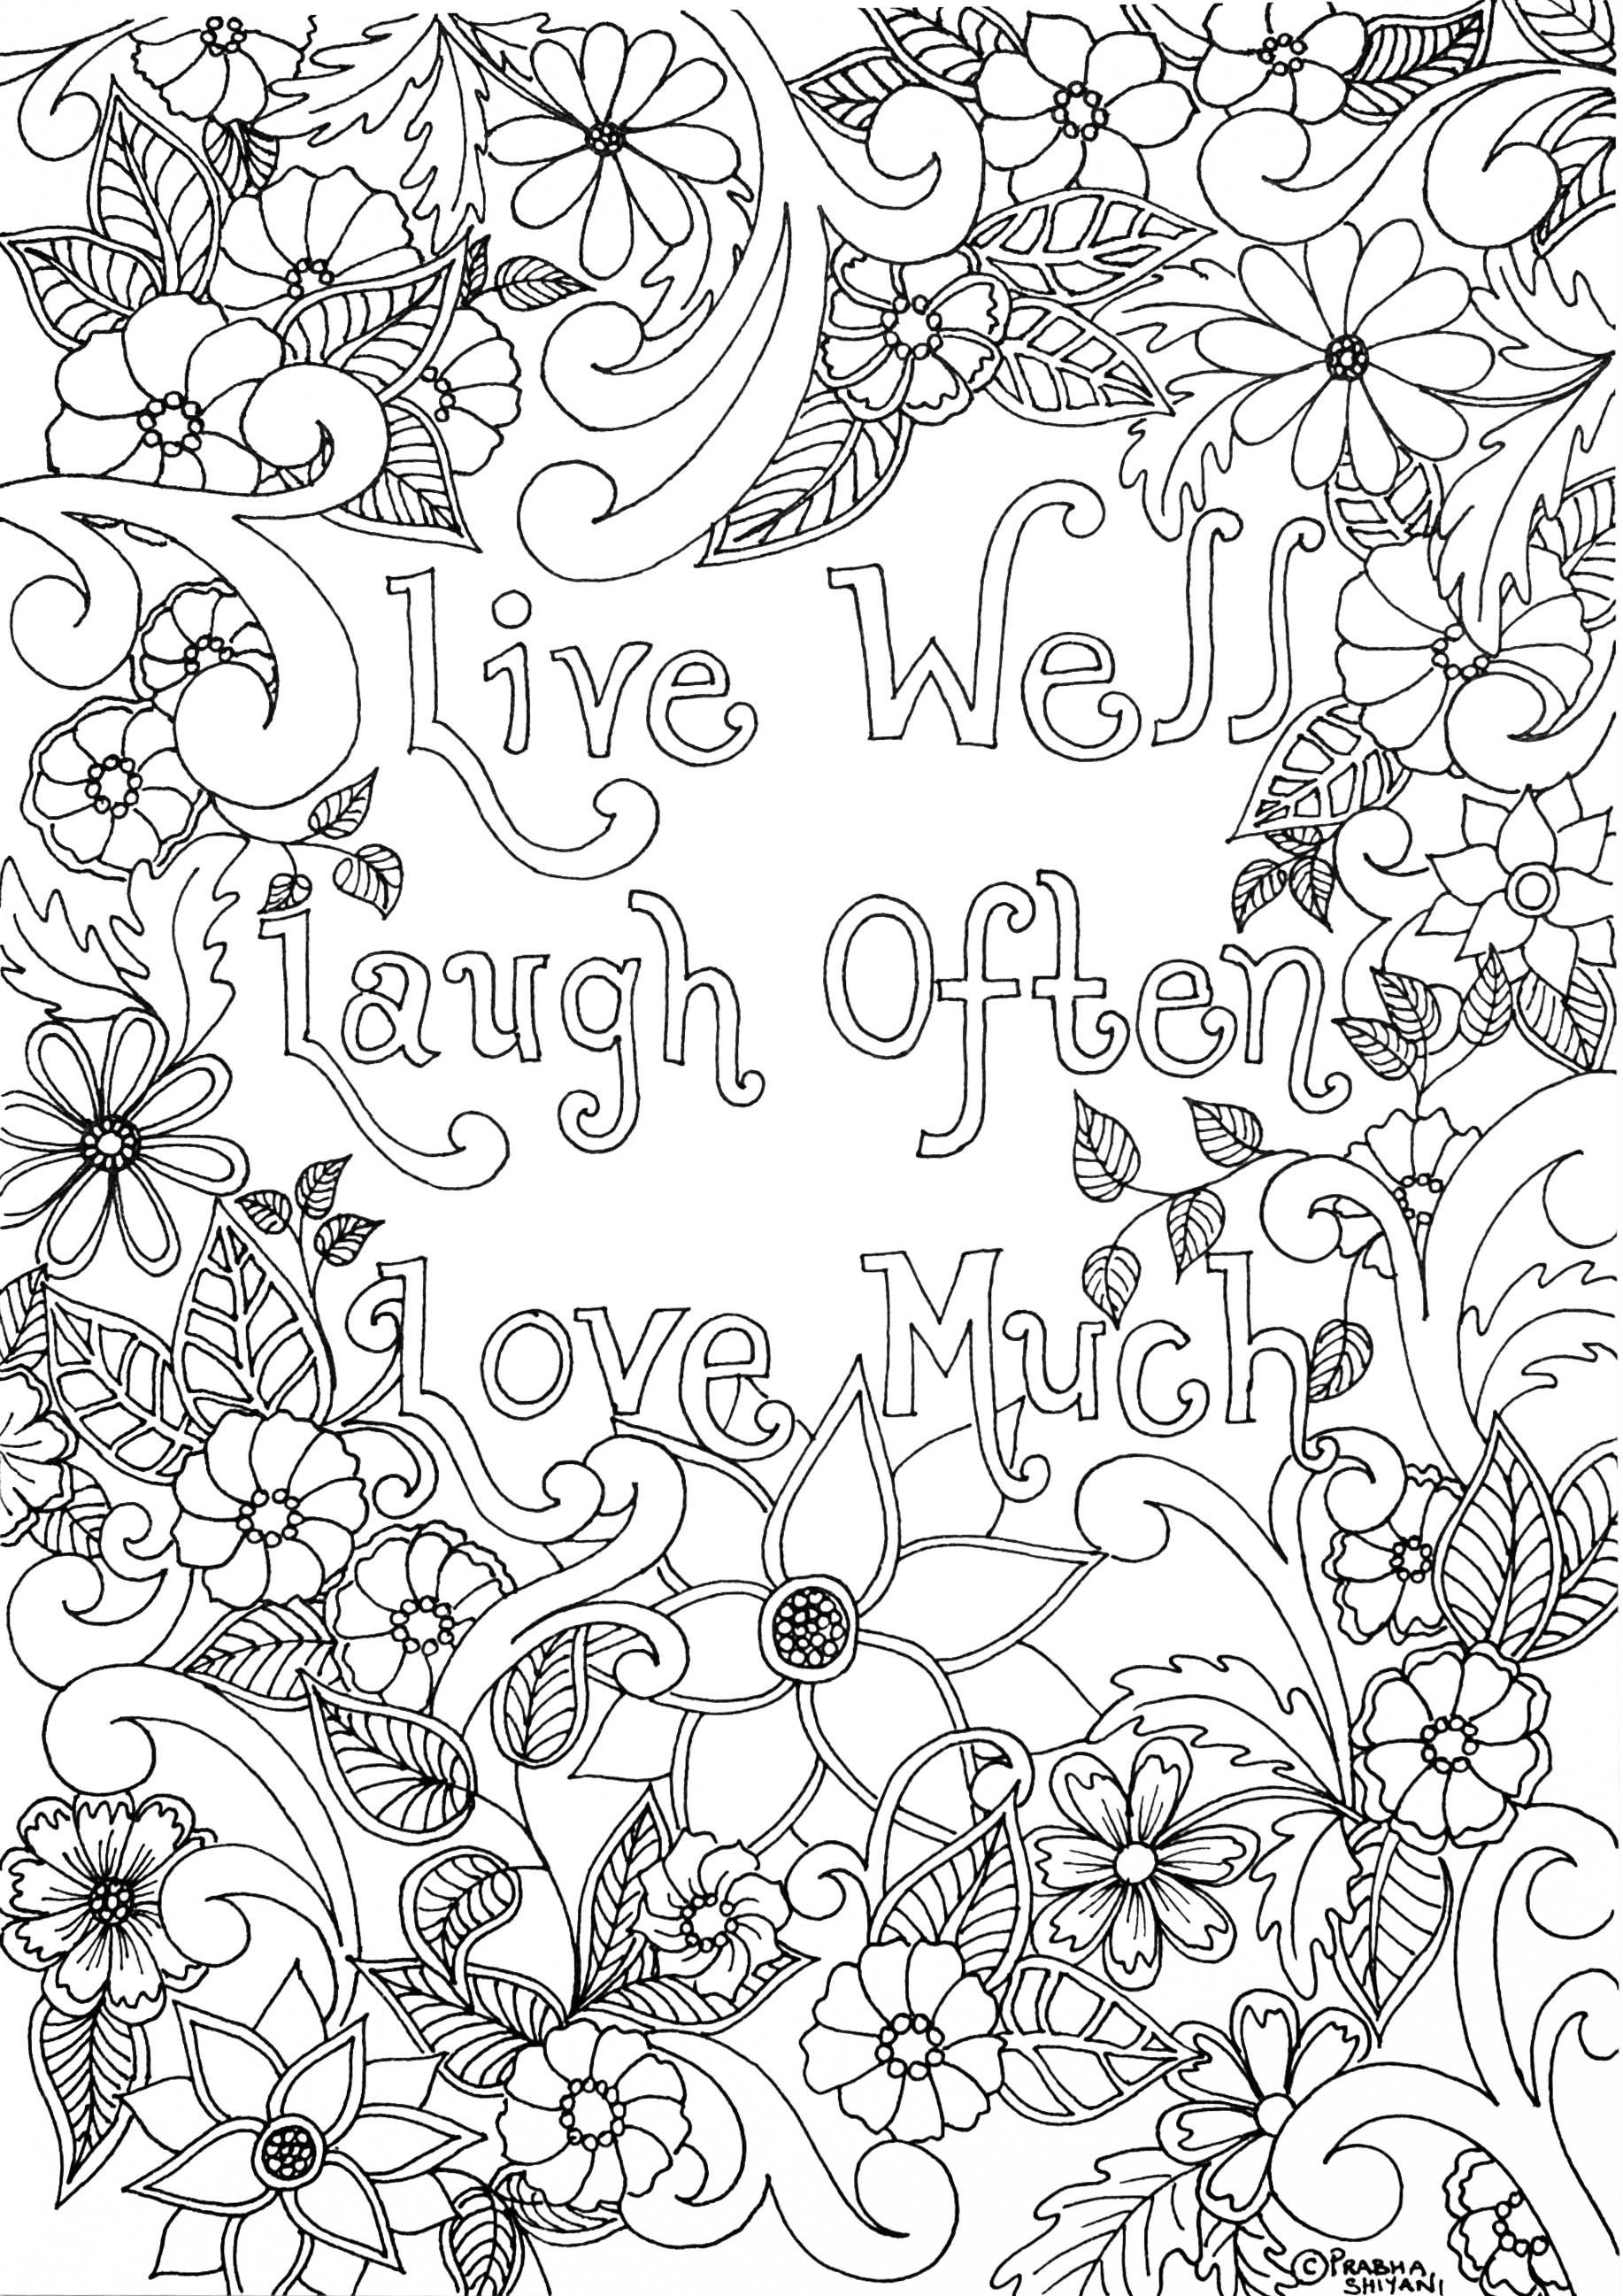 Mindful Affirmation Colouring Book | Coloring pages ...